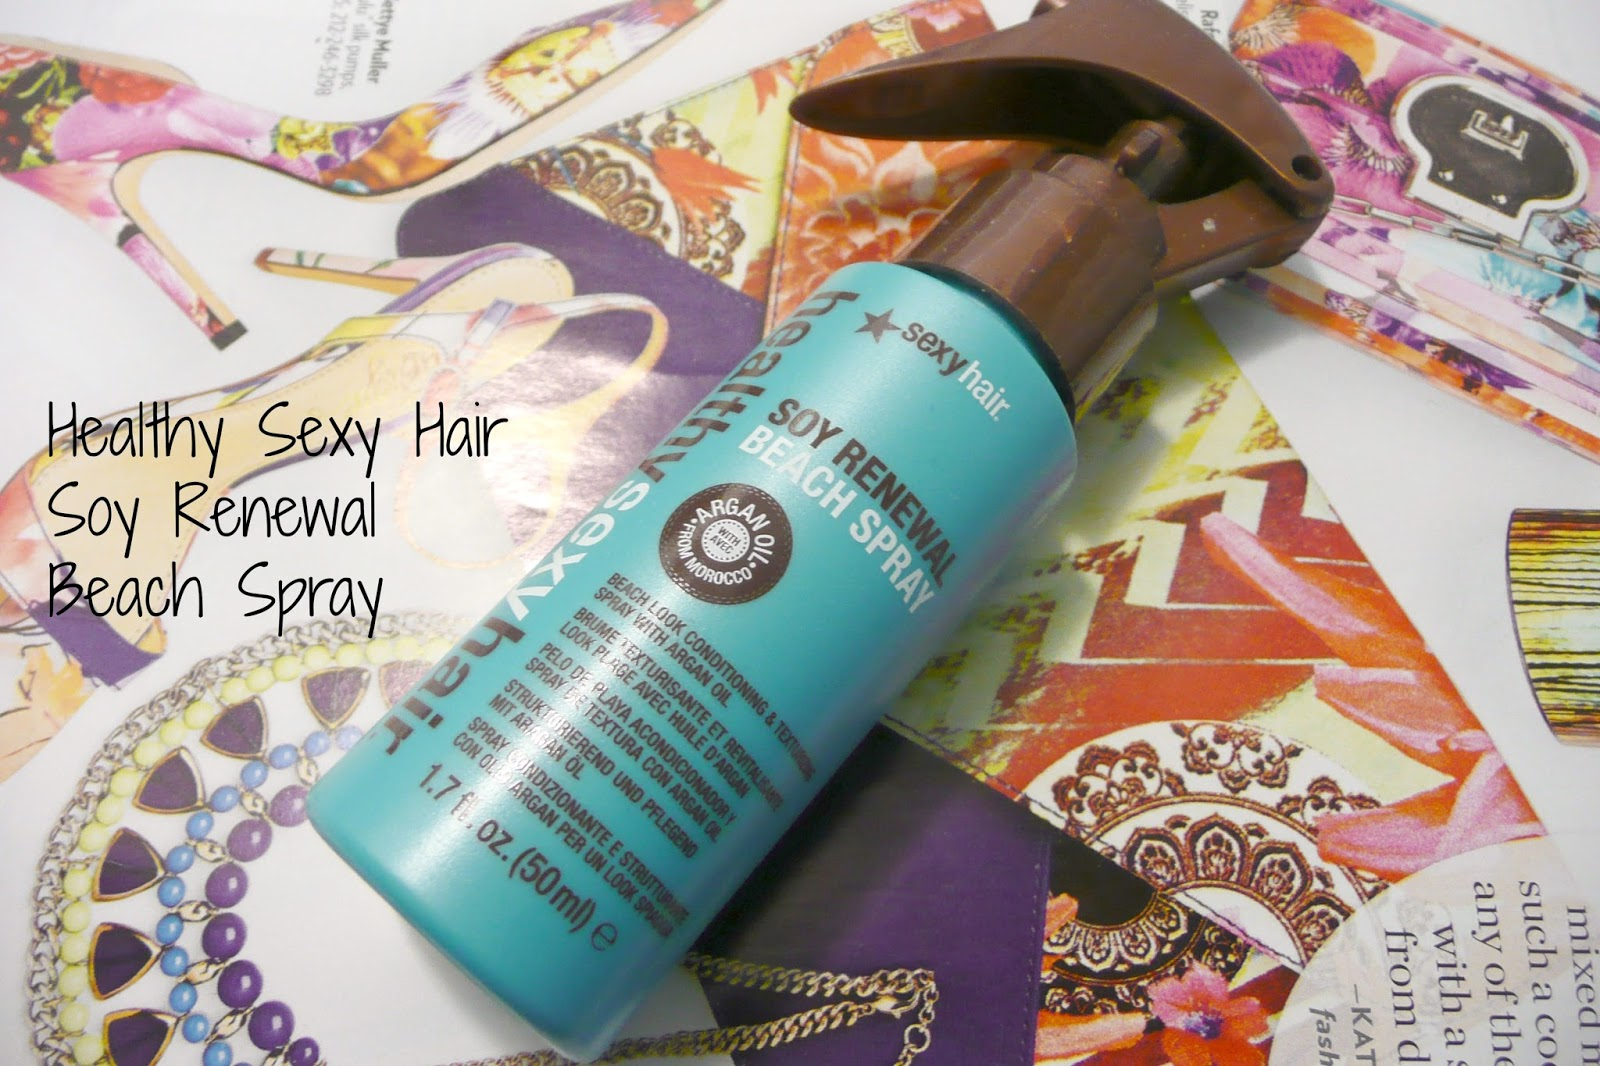 Healthy Sexy Hair Soy Renewal Beach Spray Review